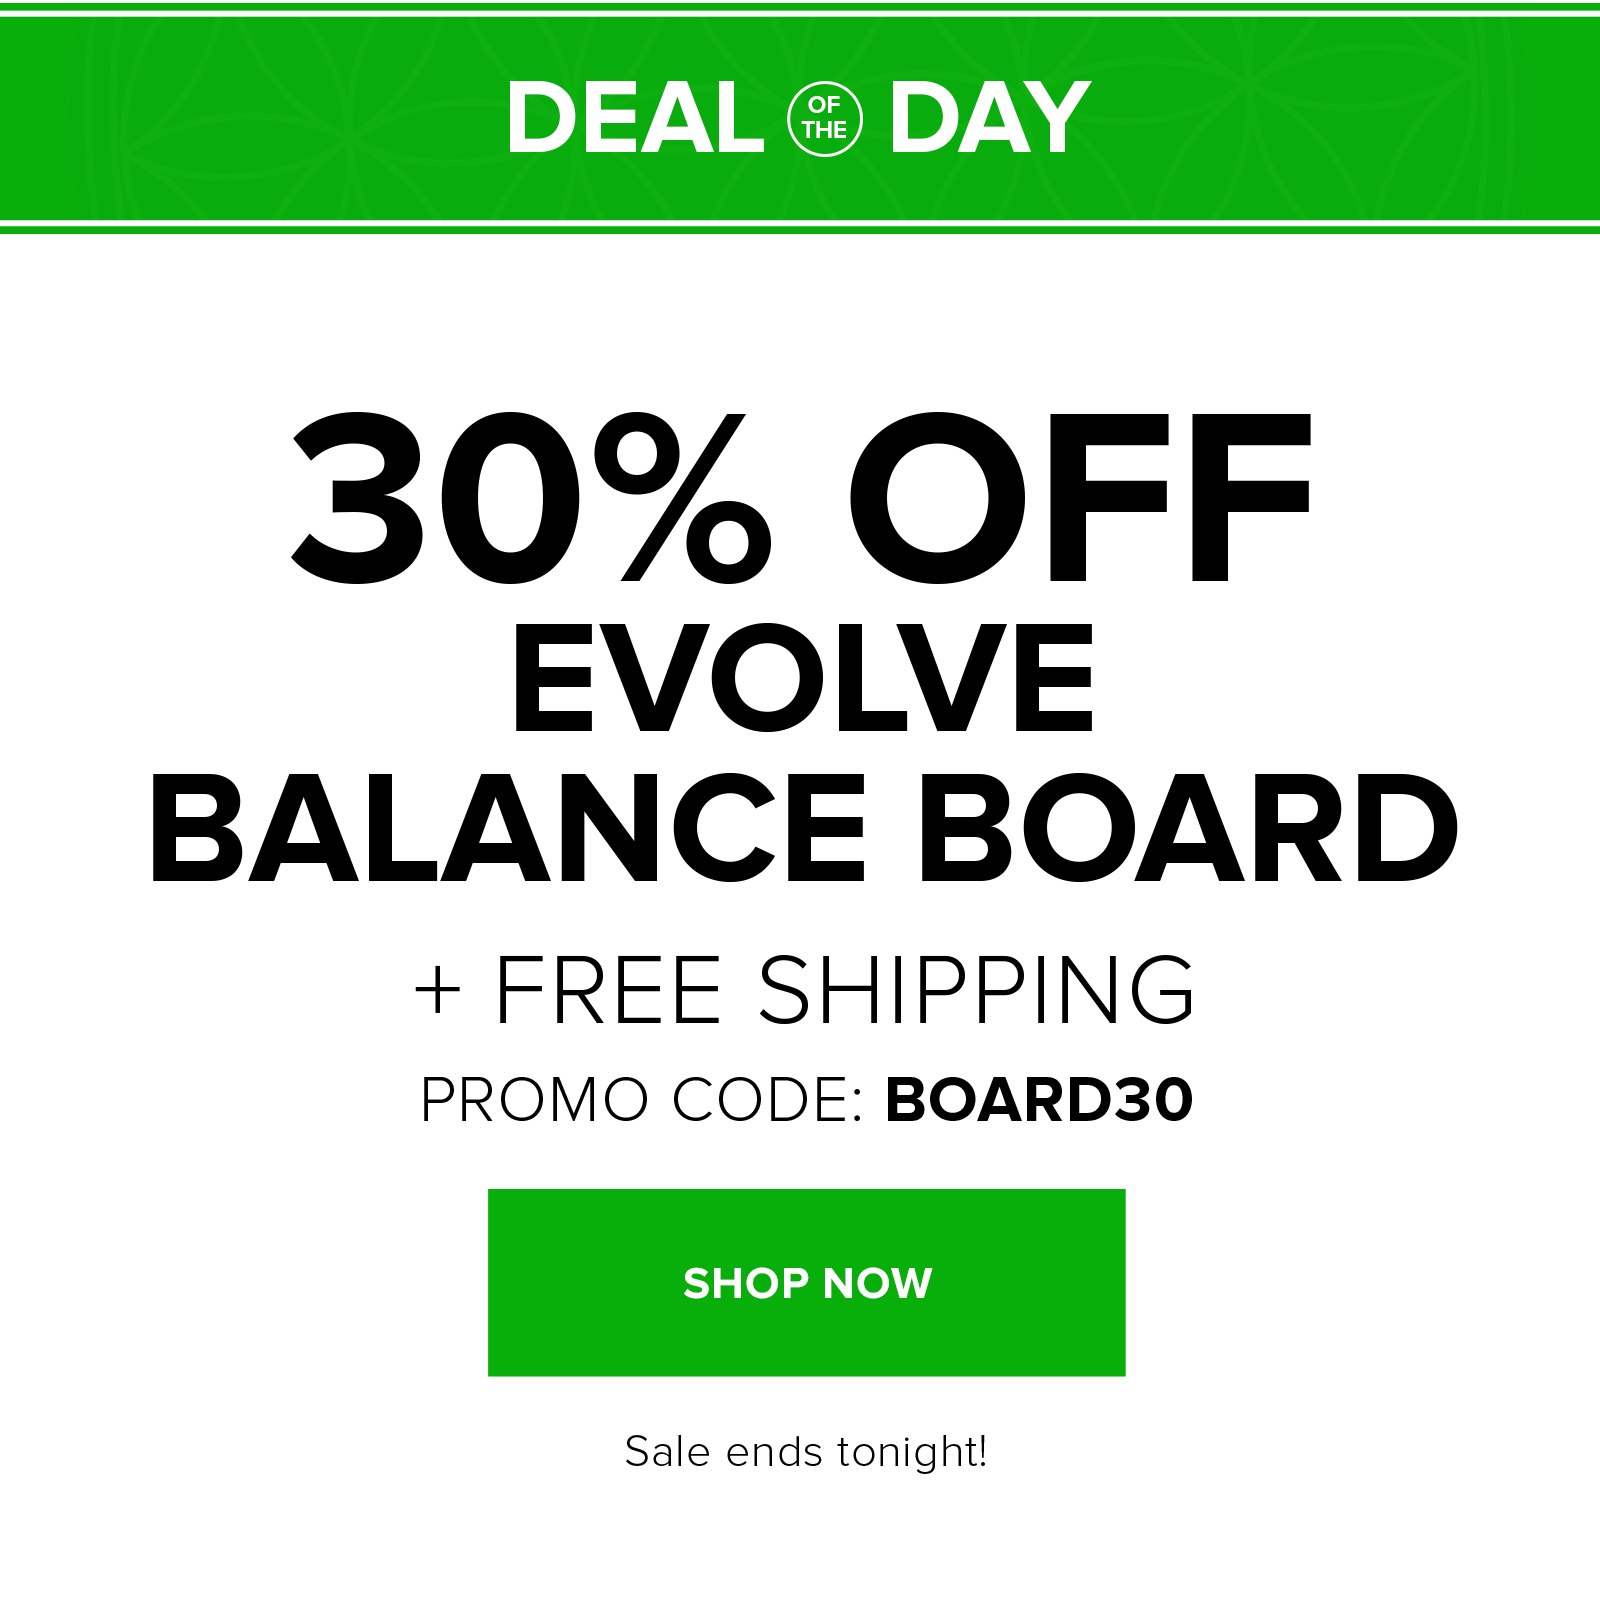 today only: 30% off the balance board with code BOARD30